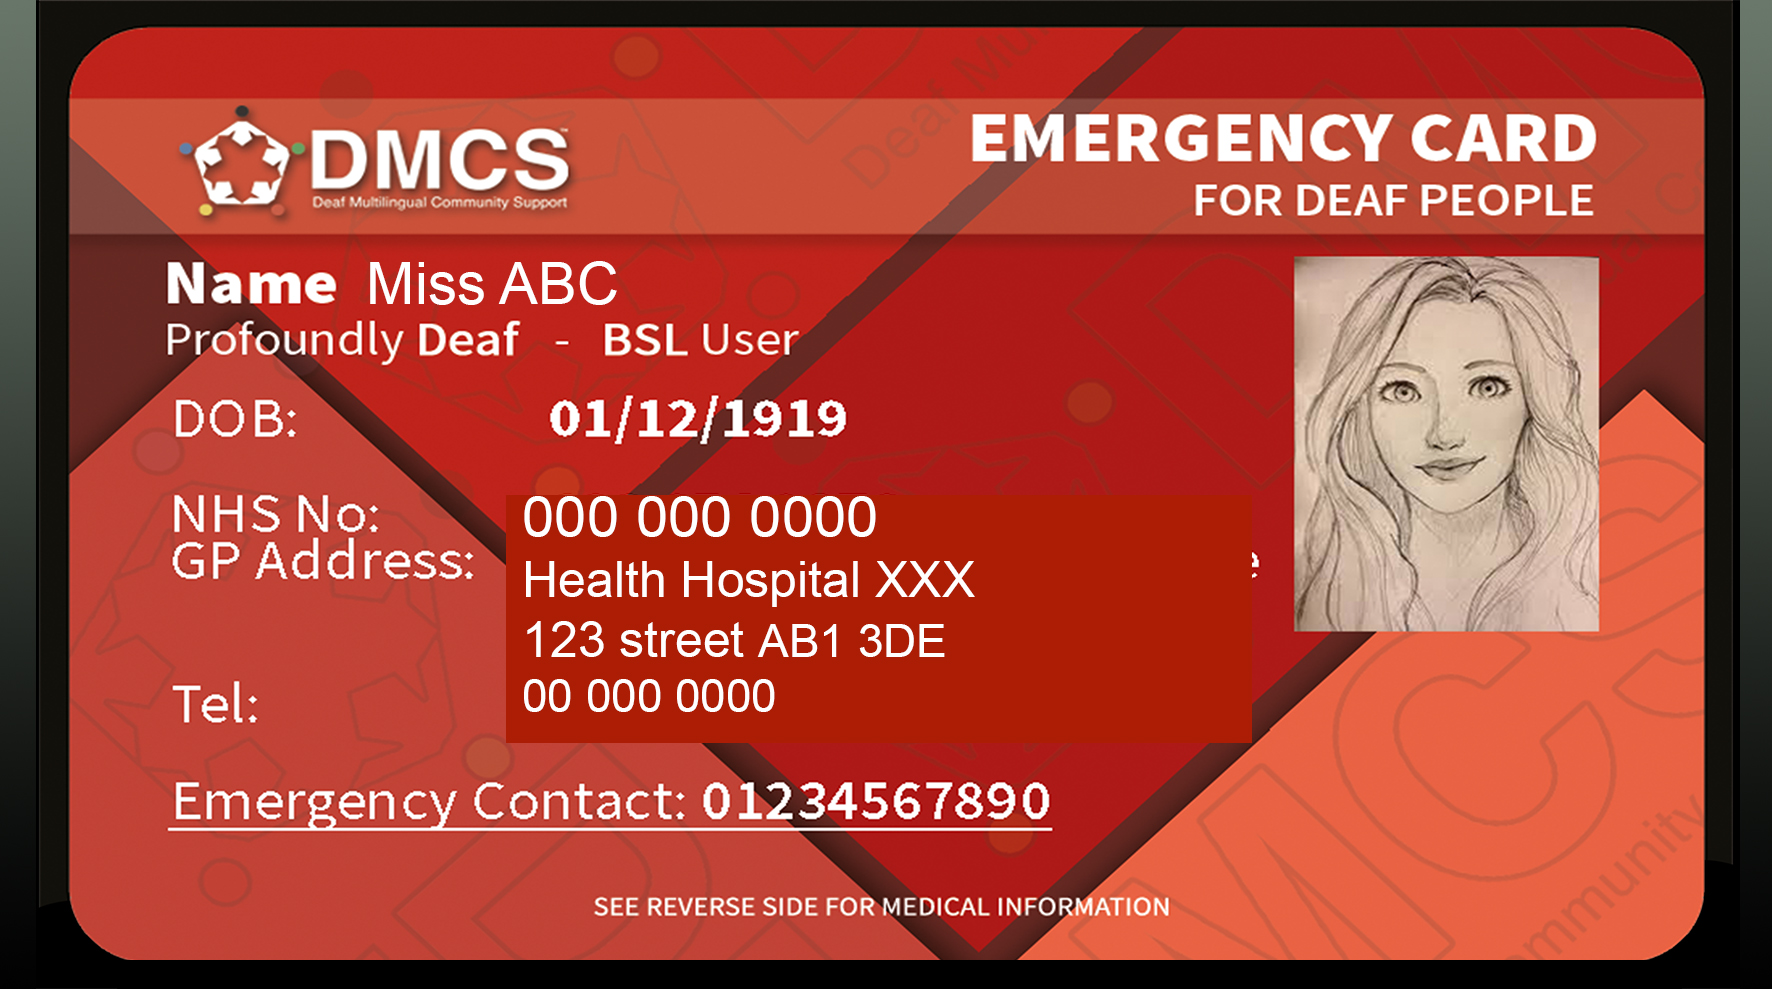 Emergency Card for Deaf people